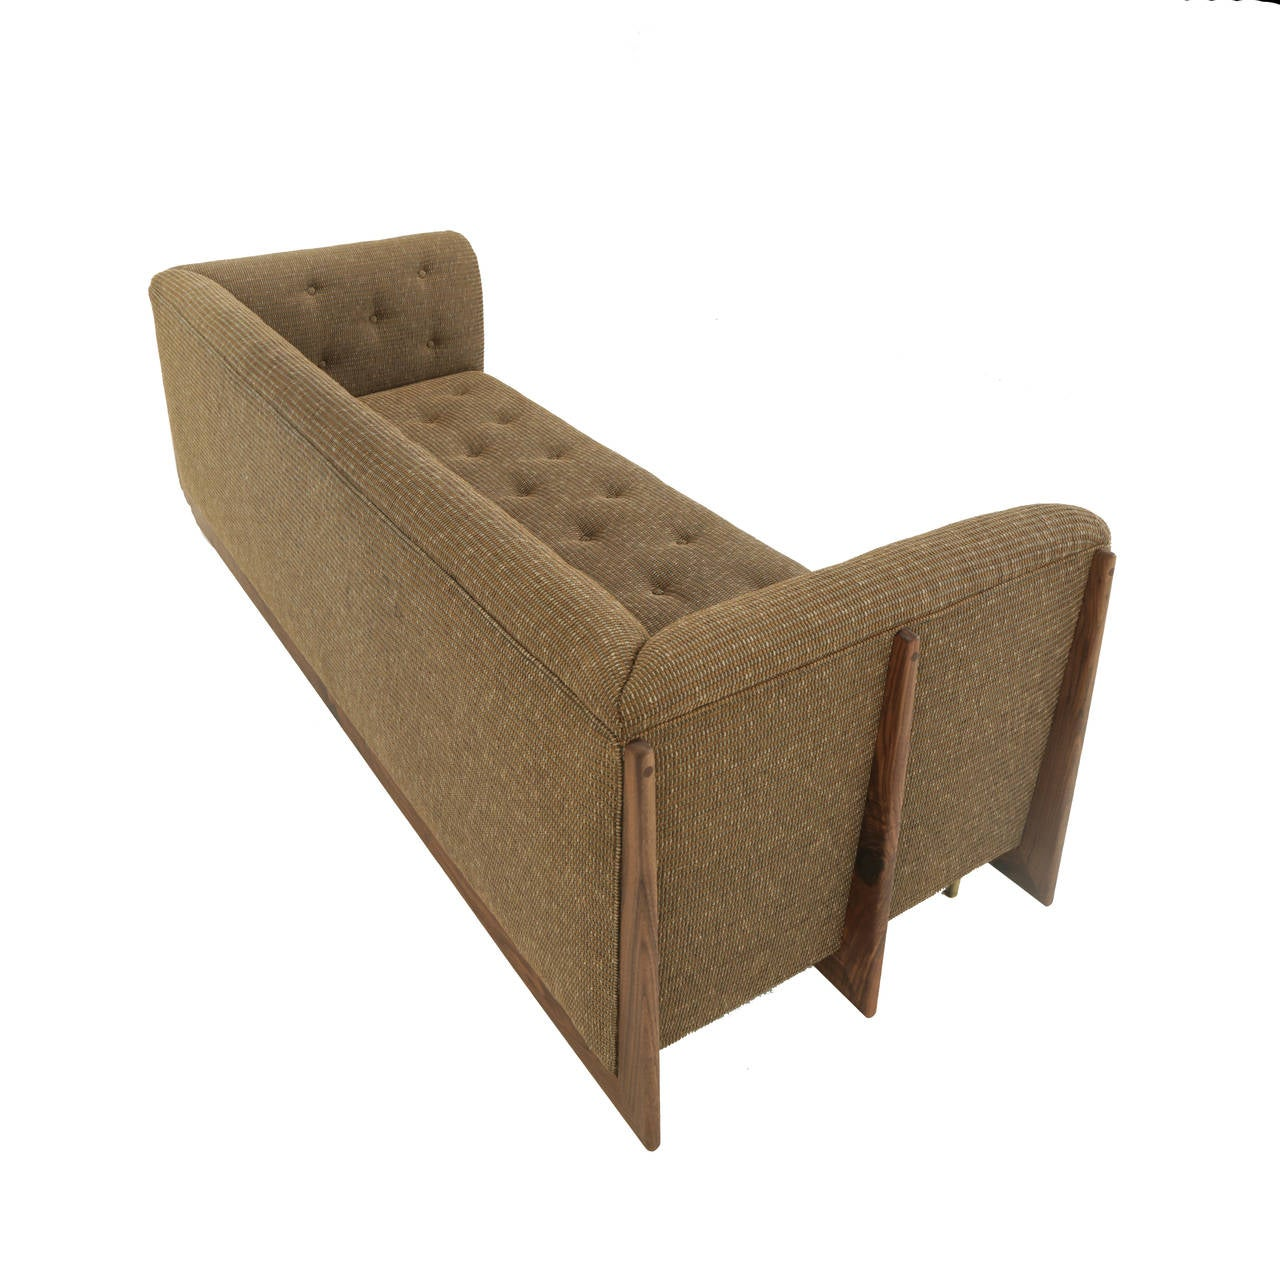 Hannah Sofa with Walnut Spines and Bronze Legs by Thomas Hayes Studio In Excellent Condition For Sale In Hollywood, CA